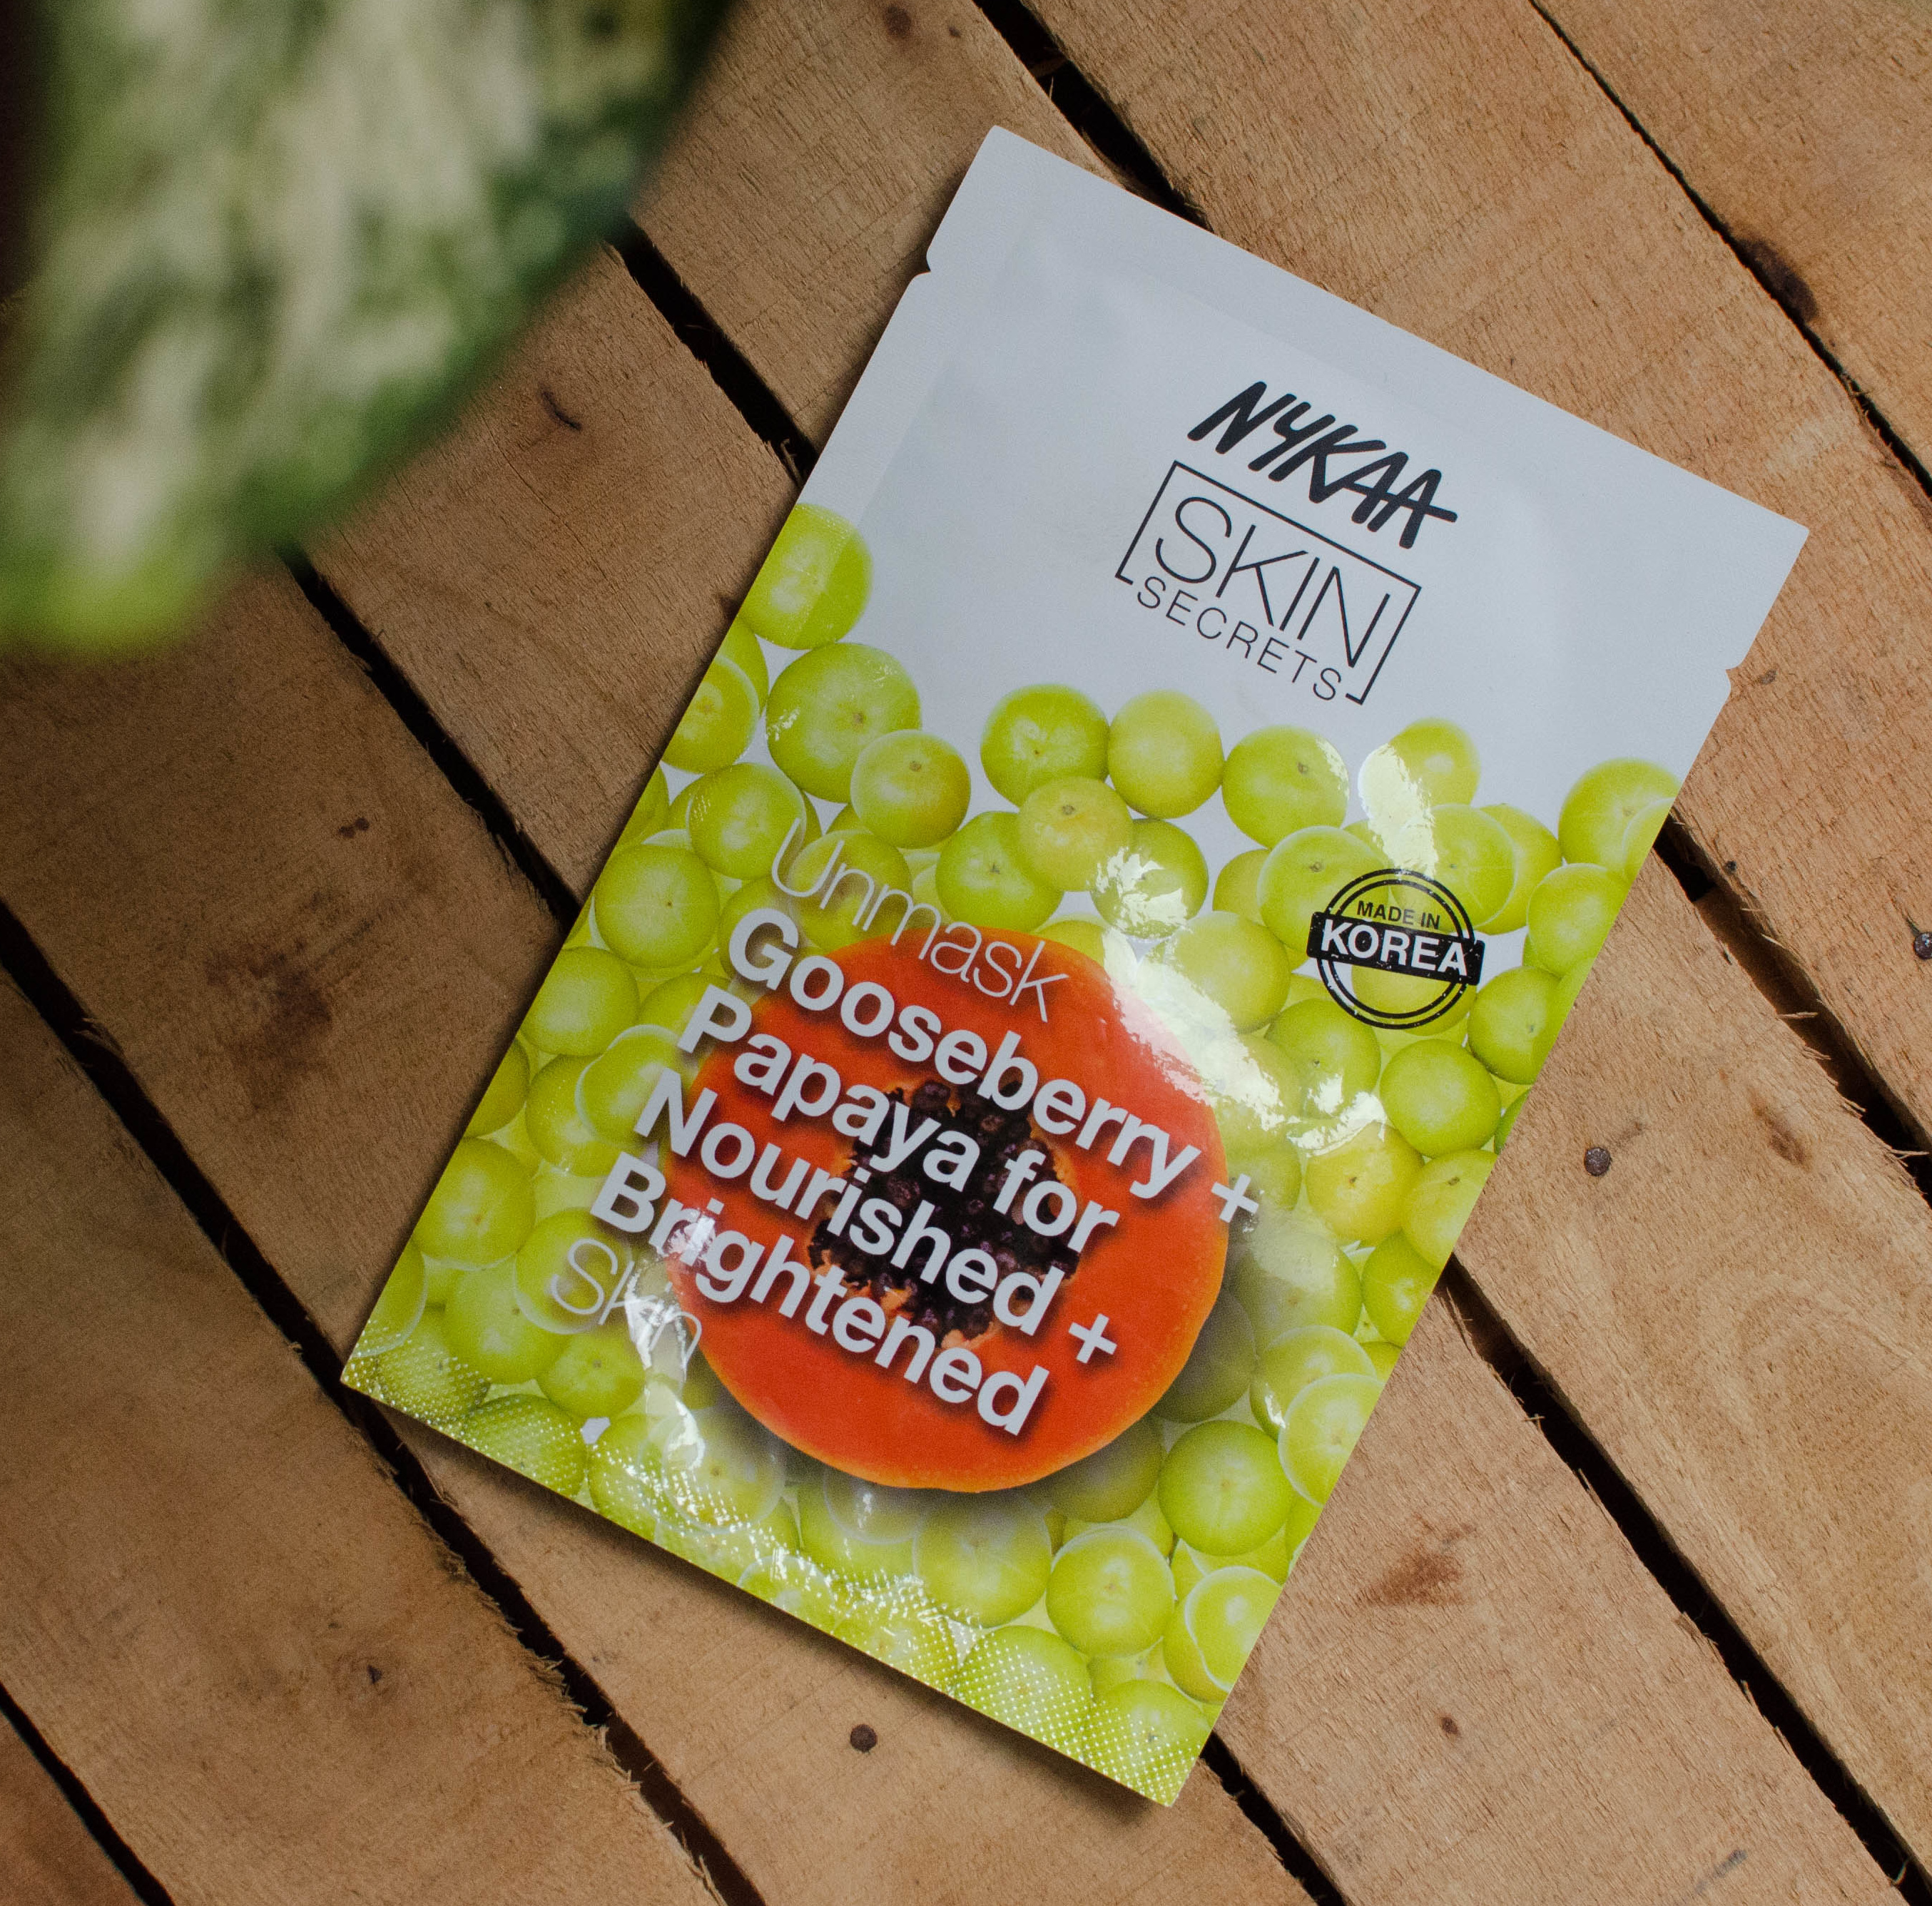 Nykaa Skin Secrets Face Sheet Mask Gooseberry + Papaya Review | Cherry On Top